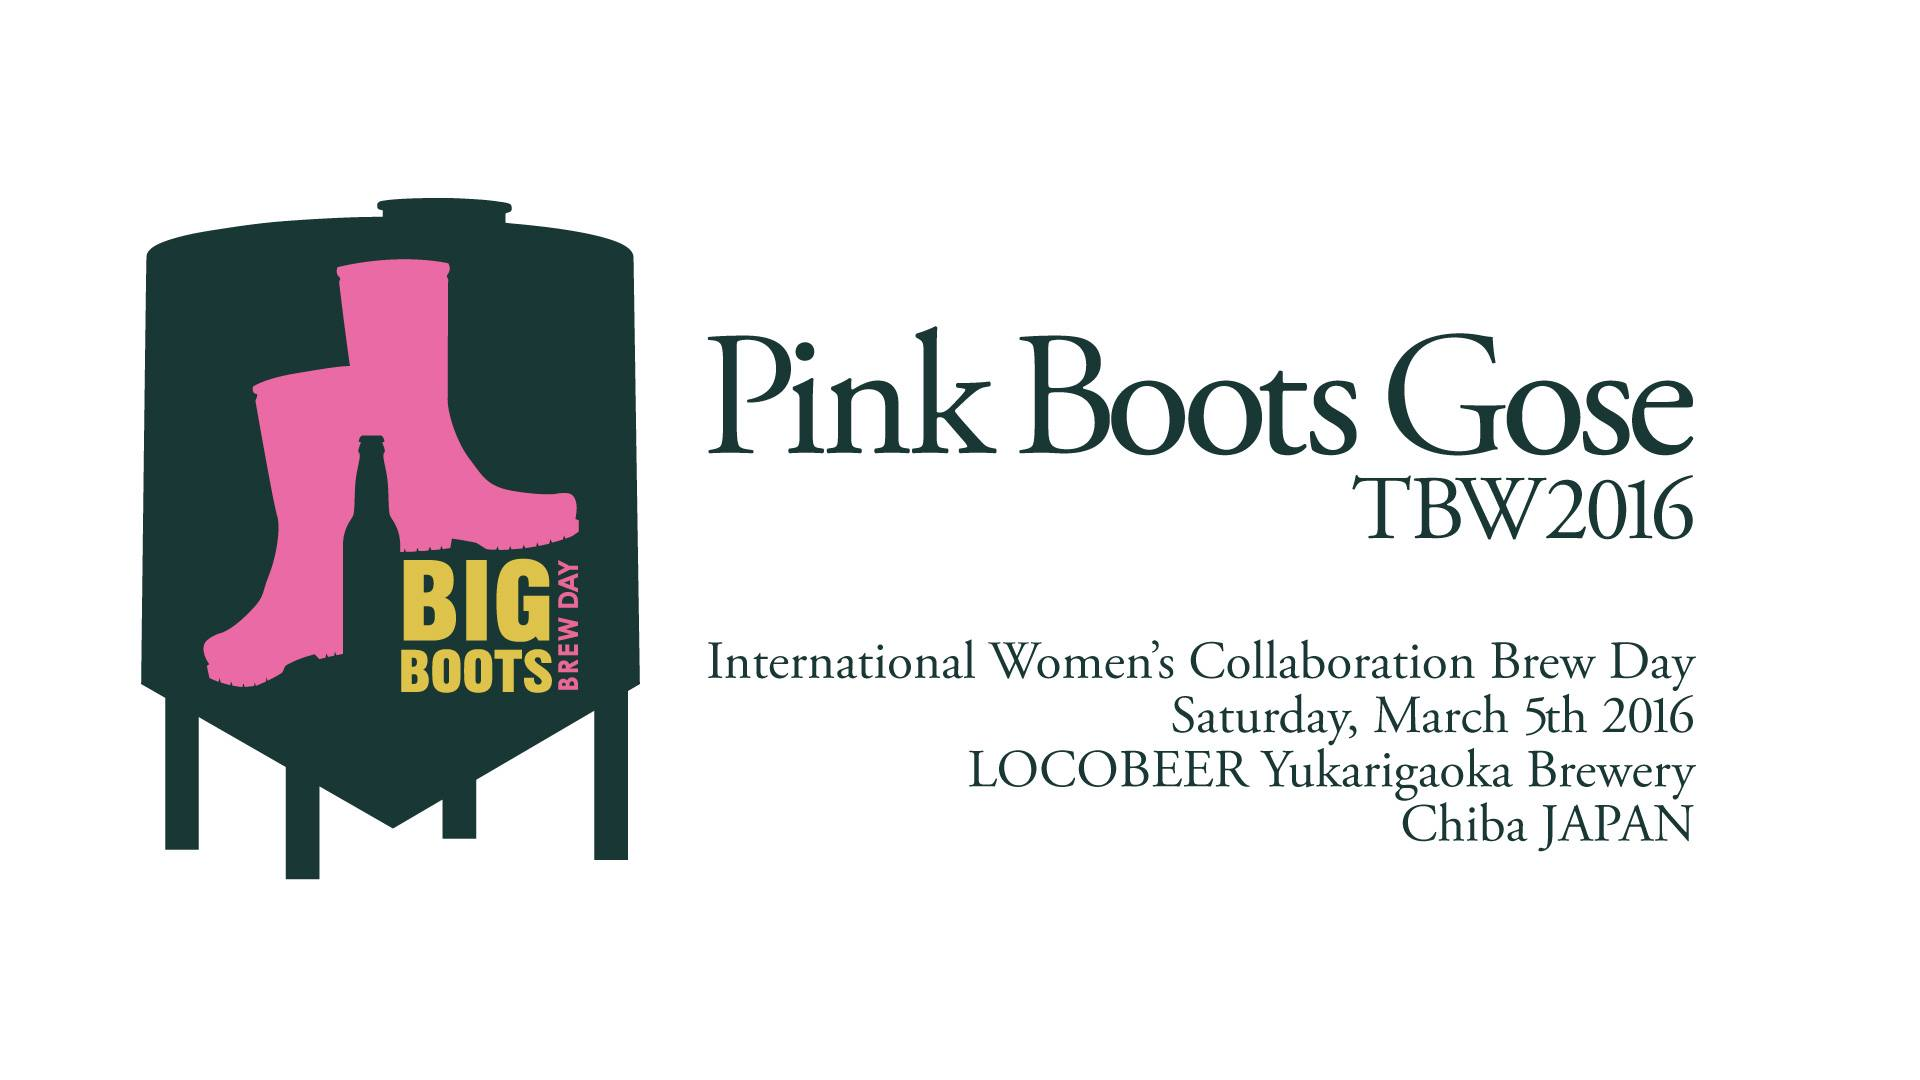 Pink Boots Gose